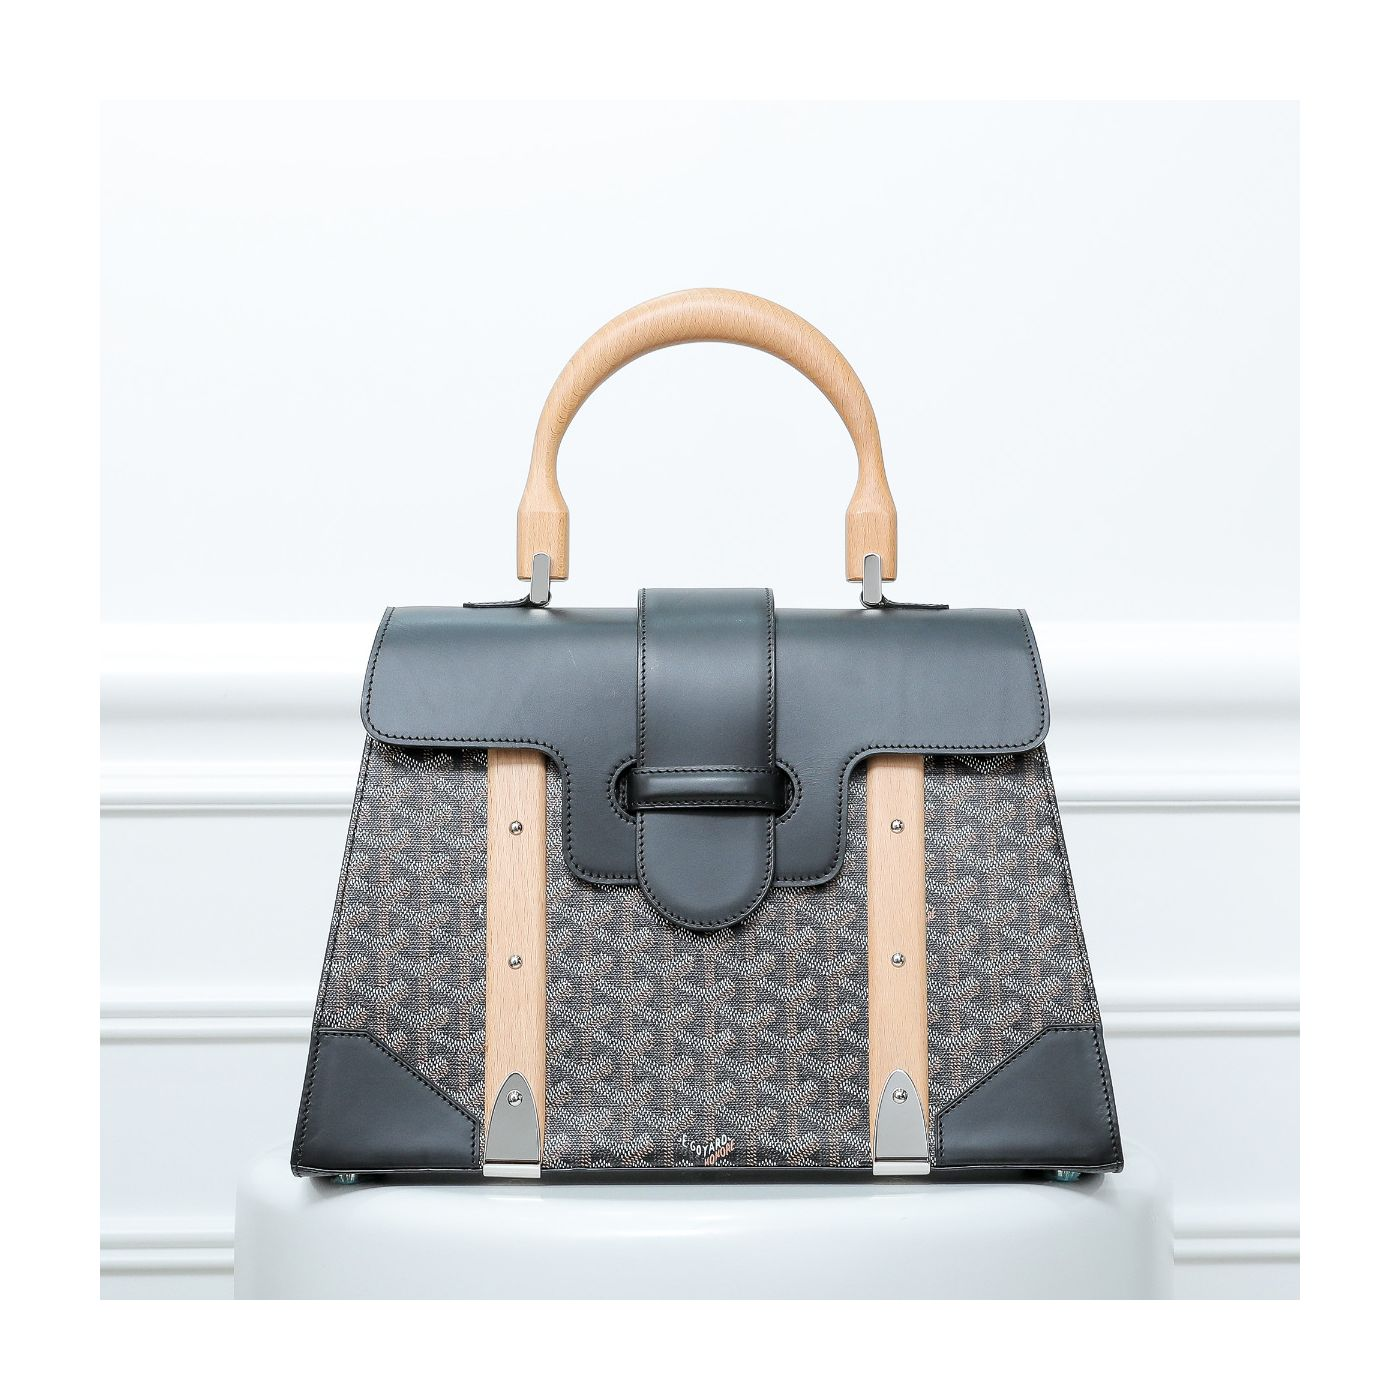 Goyard Black Saigon Tote Large Bag